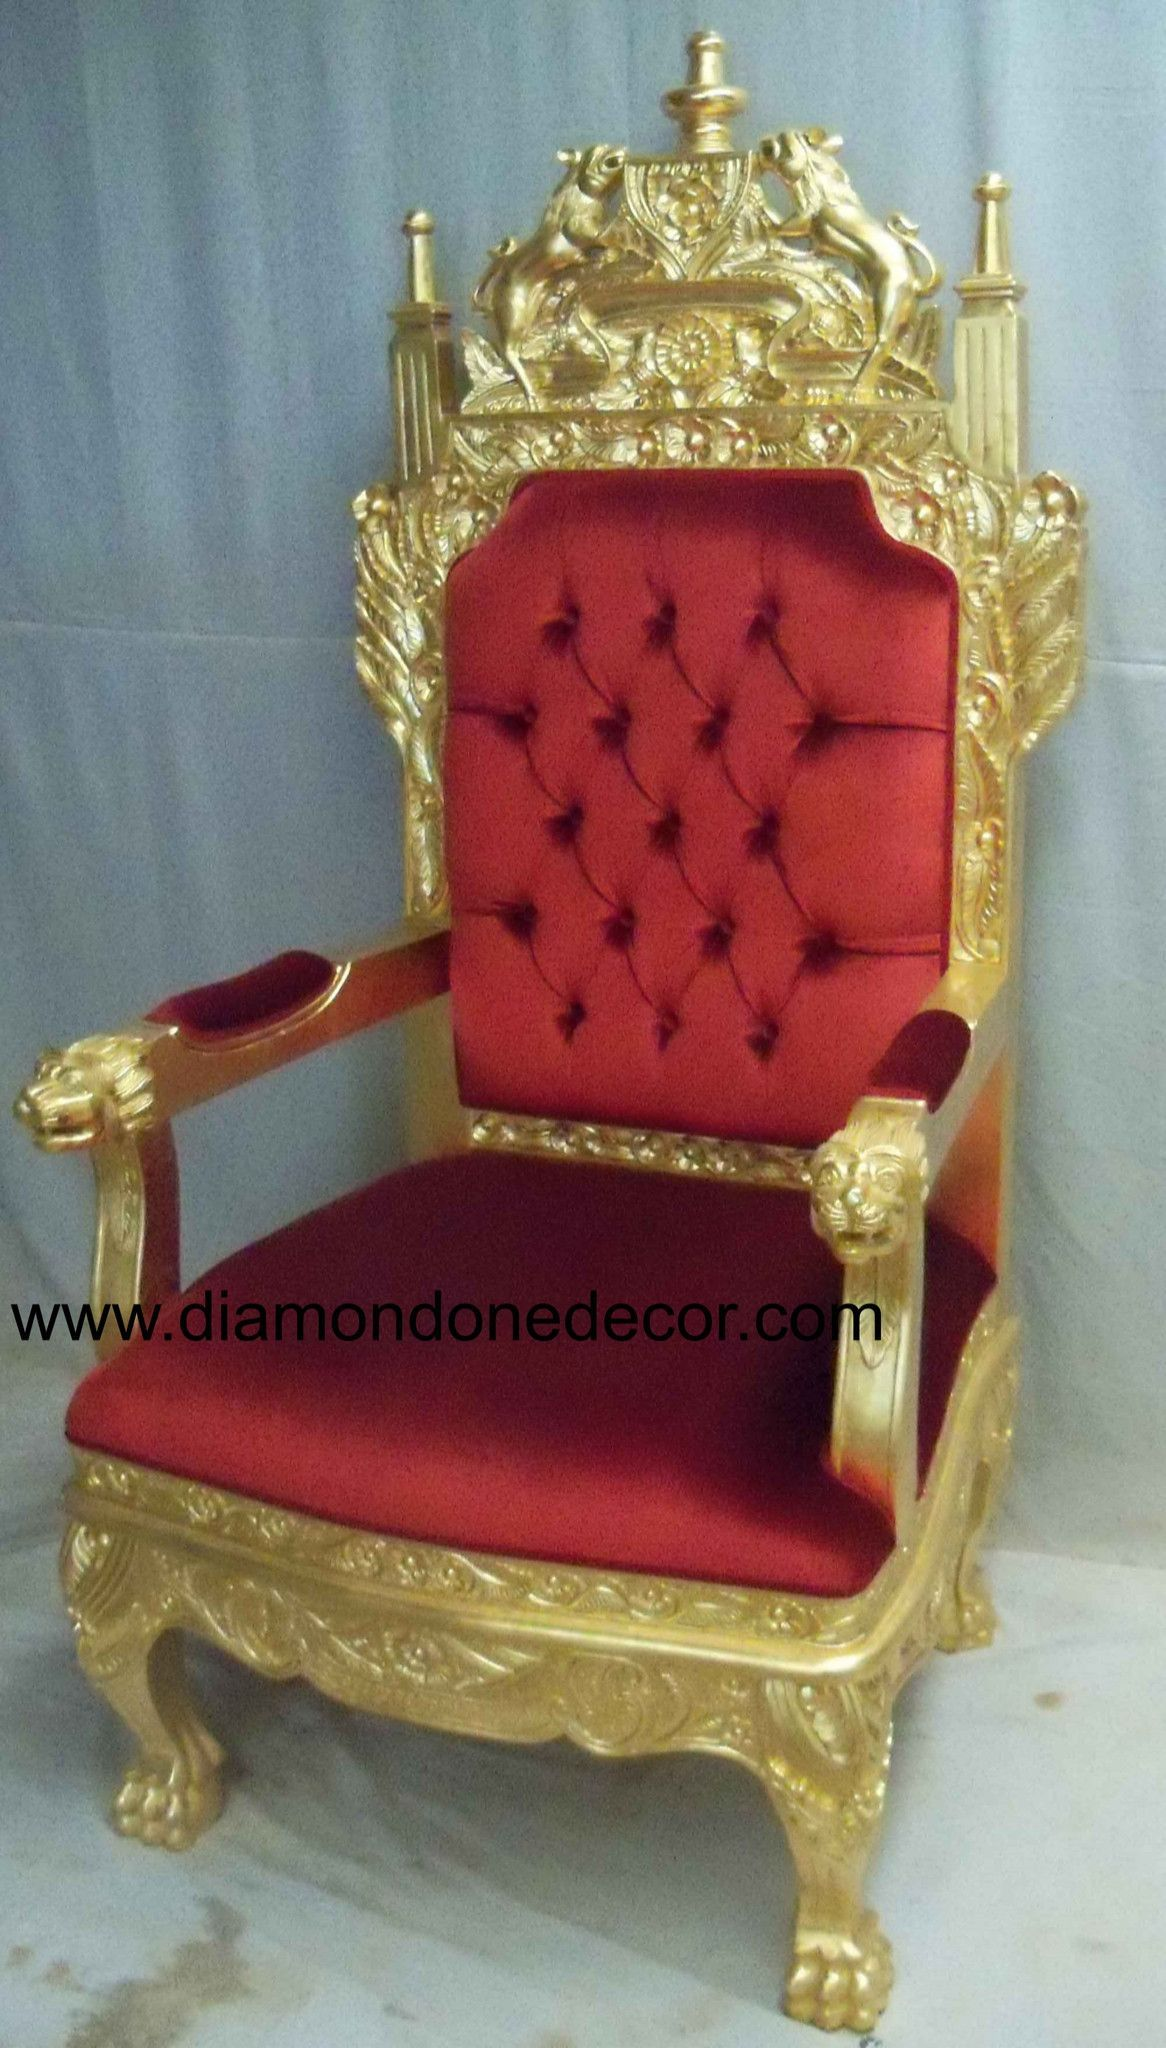 Custom Made Throne Chairs Arm Chair Covers Baroque Heavily Carved Louis Xvi French Reproduction